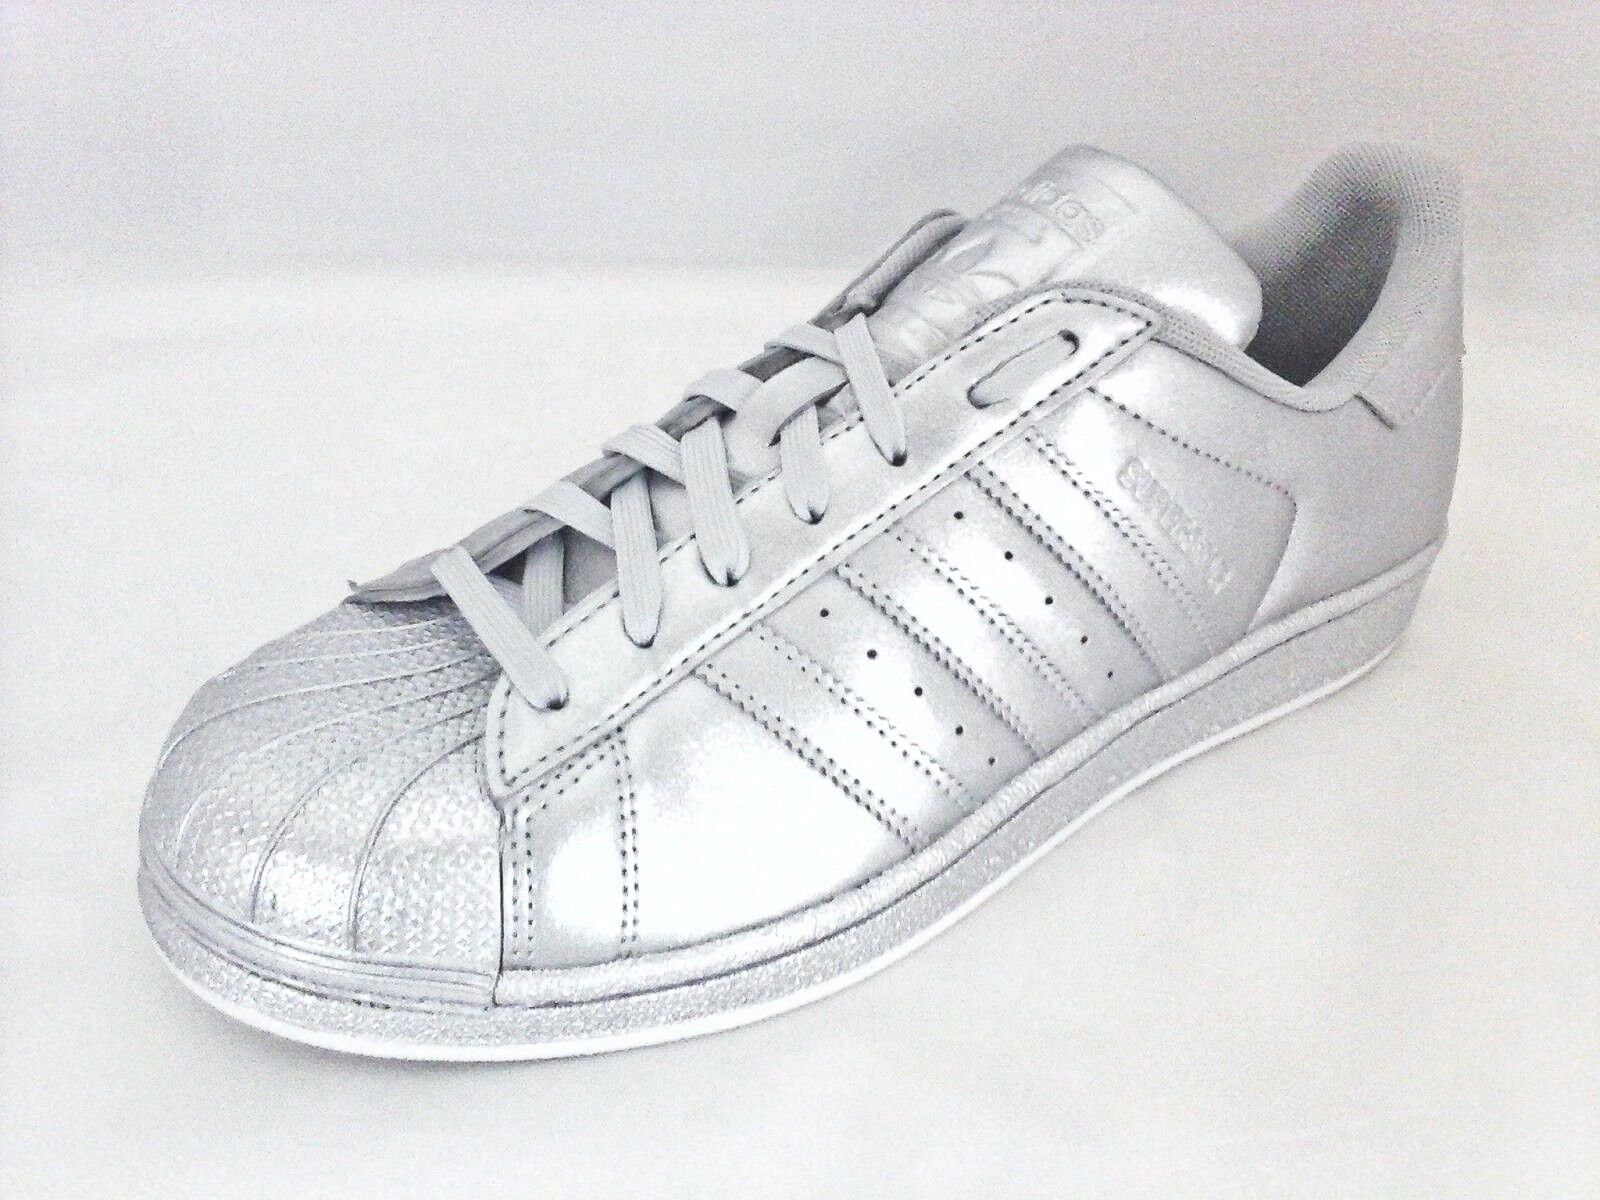 Women's Adidas Originals Superstar Metallic Siver Sneakers Price reduction